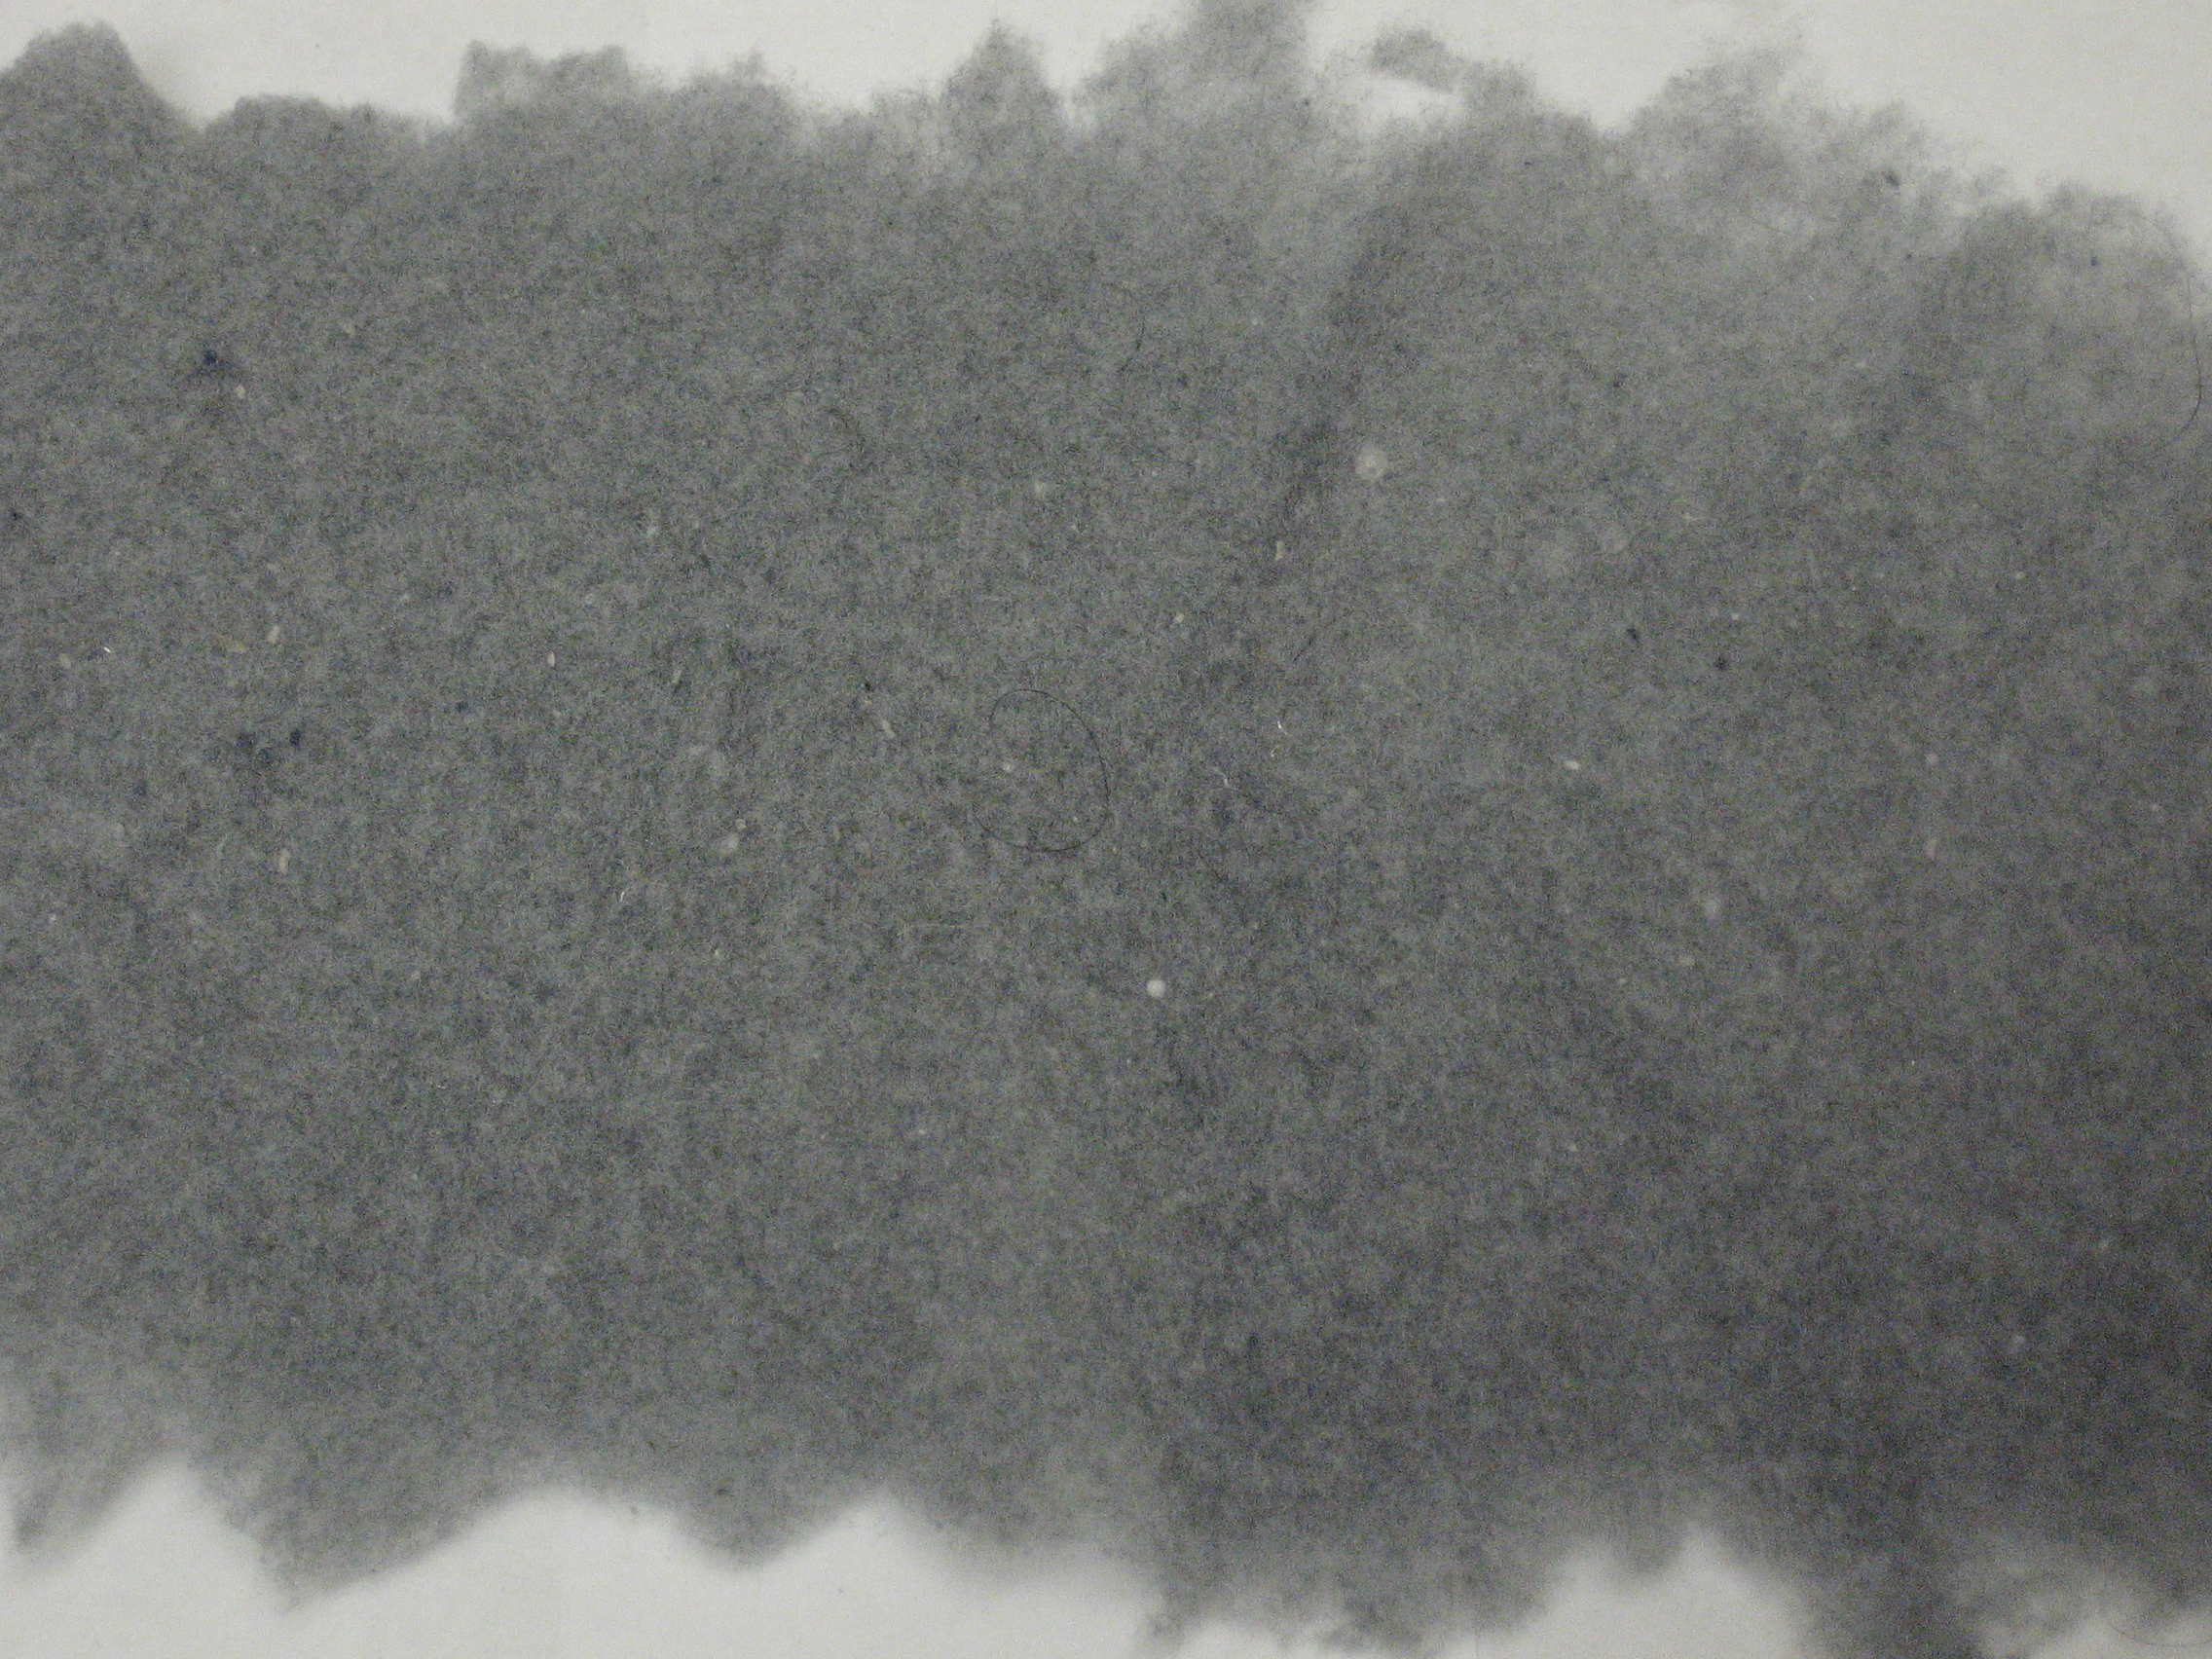 English: A close-up of dryer lint